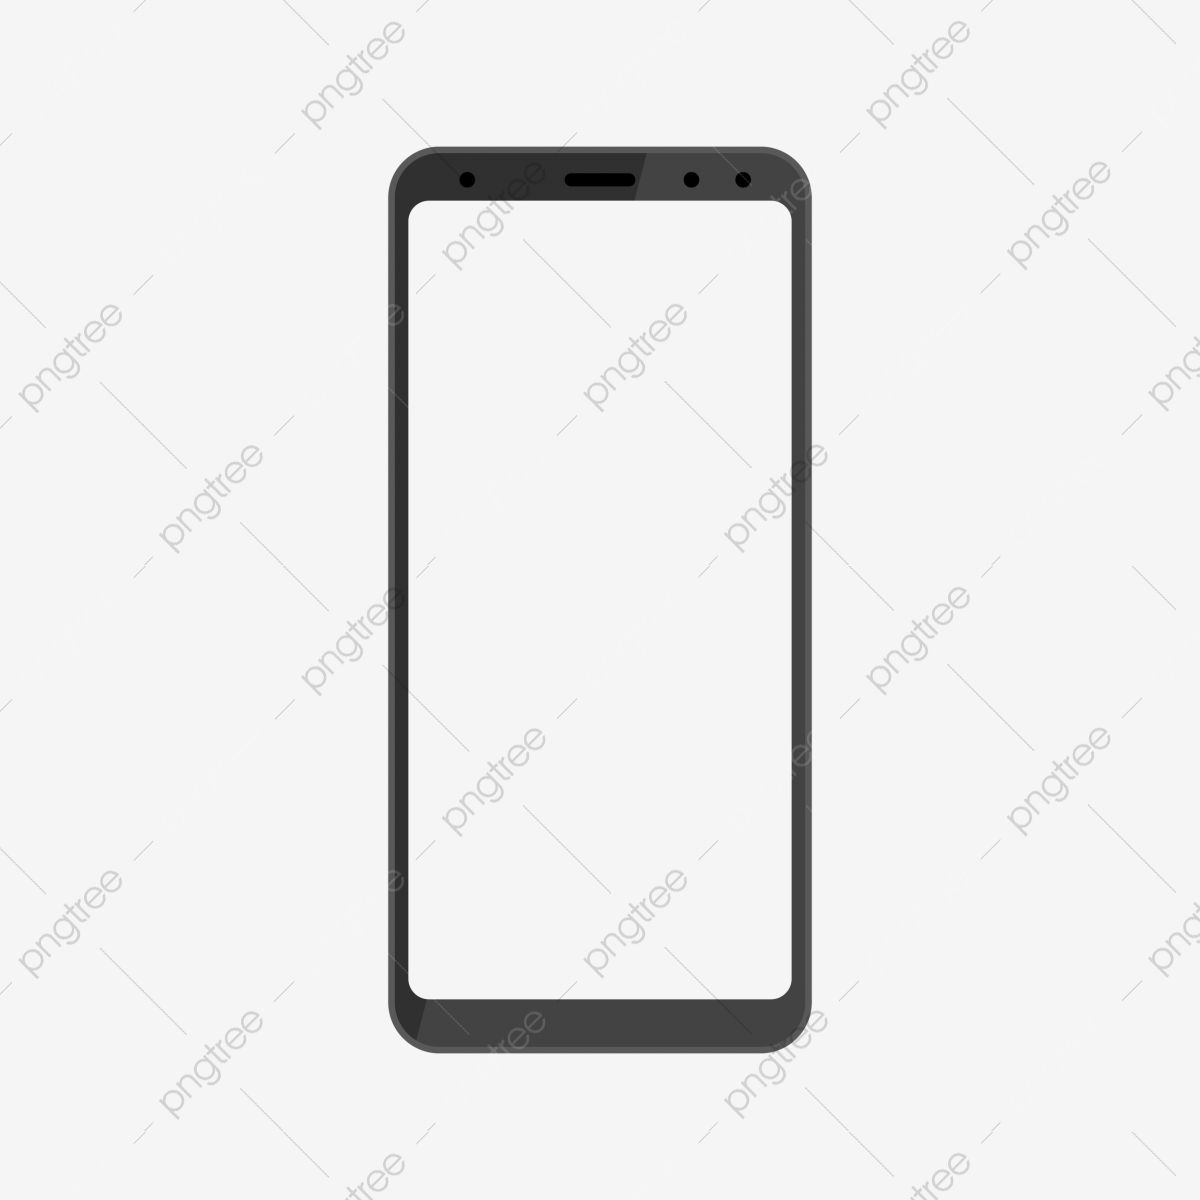 Phone In Hand Png Image Phone Phone Shop Cell Phone Shop